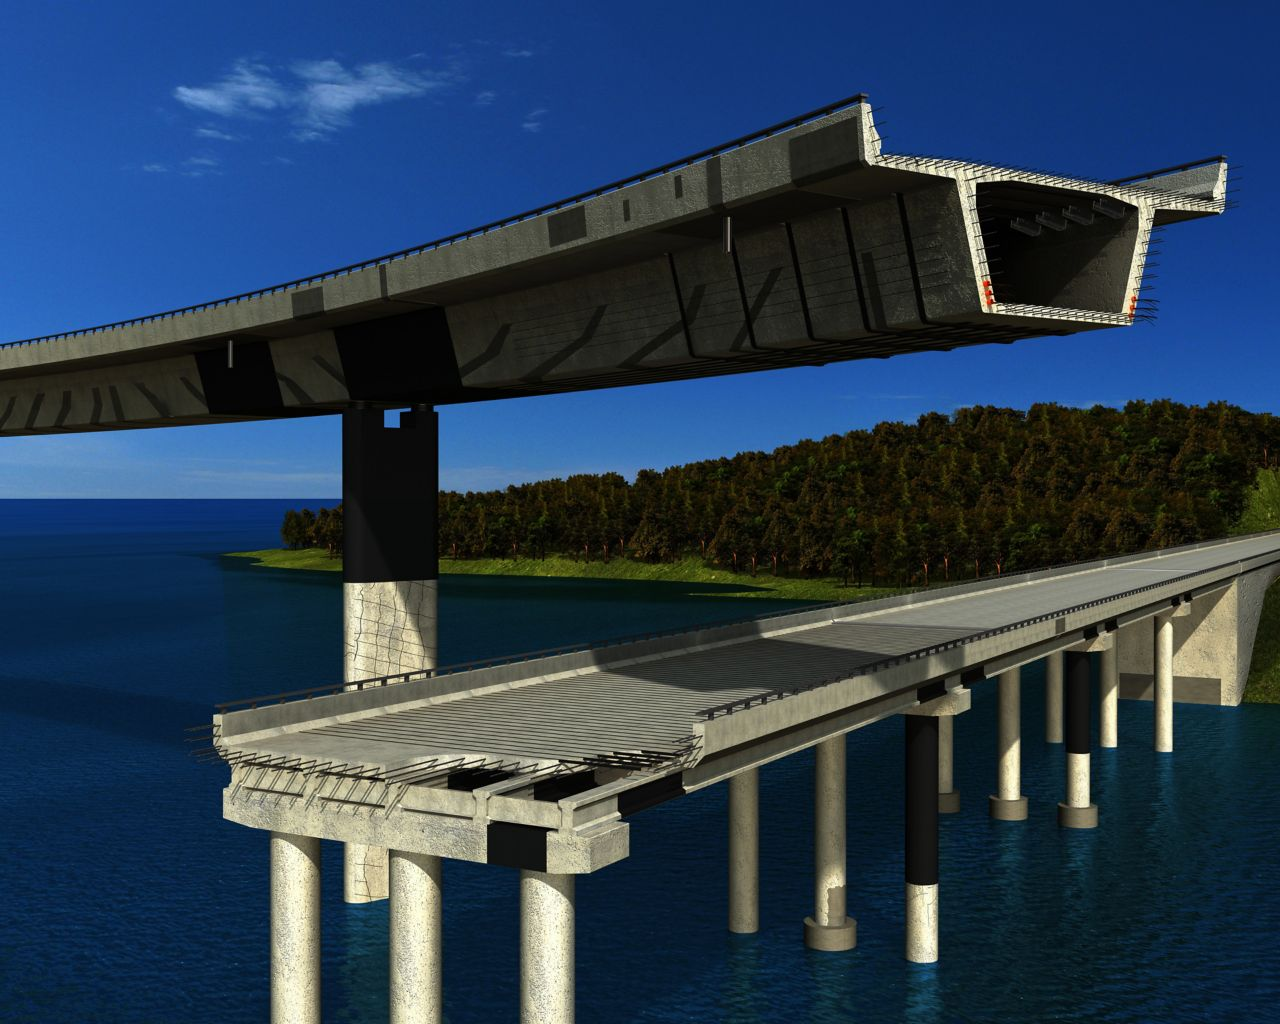 Illustration of concrete bridge with structural strengthening carbon fiber plates and FRP fabric